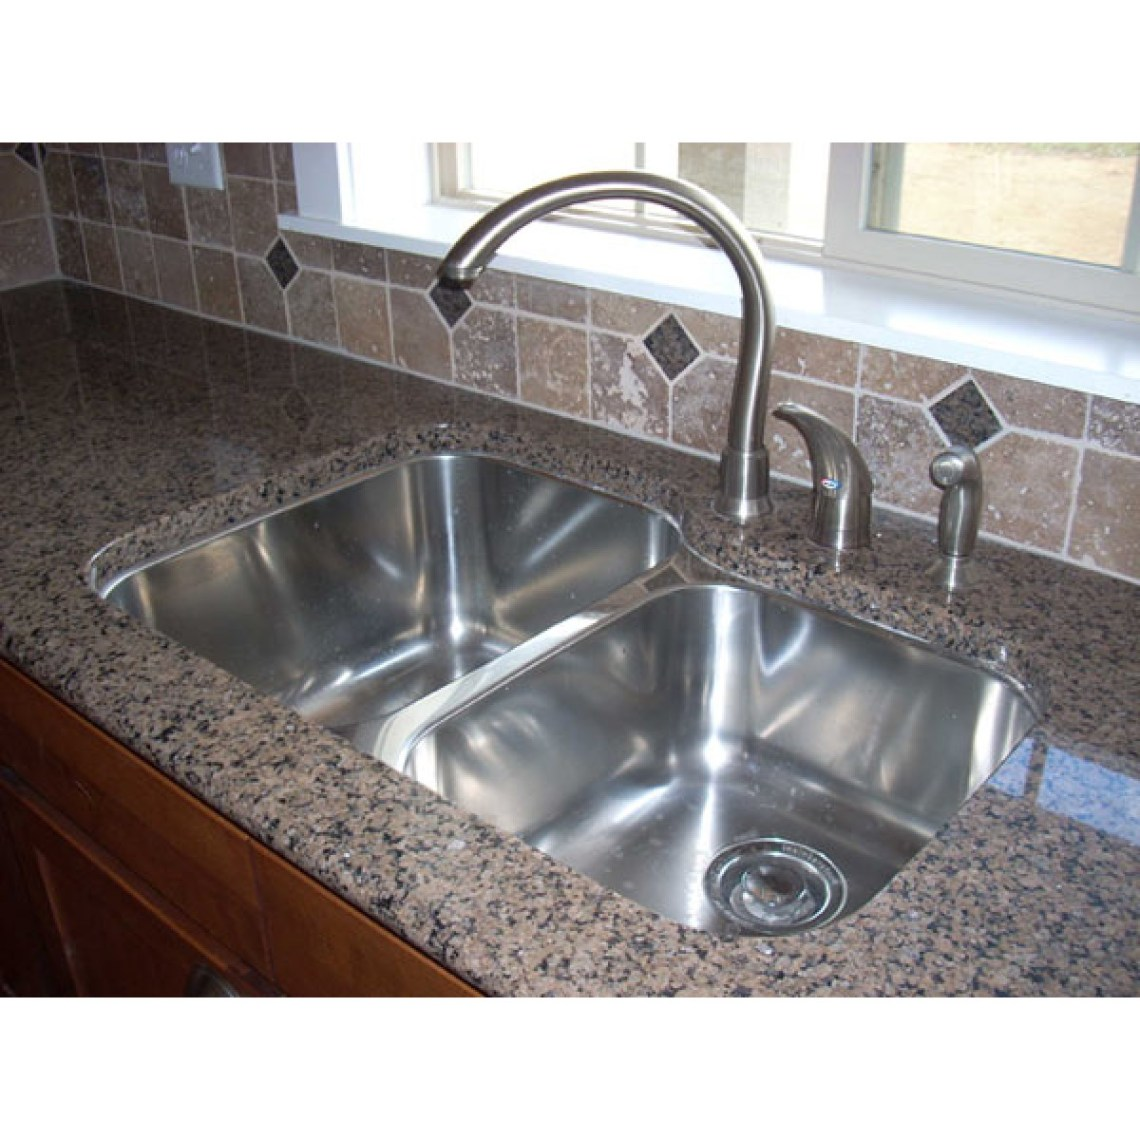 31 Inch Stainless Steel Undermount 60/40 Double Bowl ...